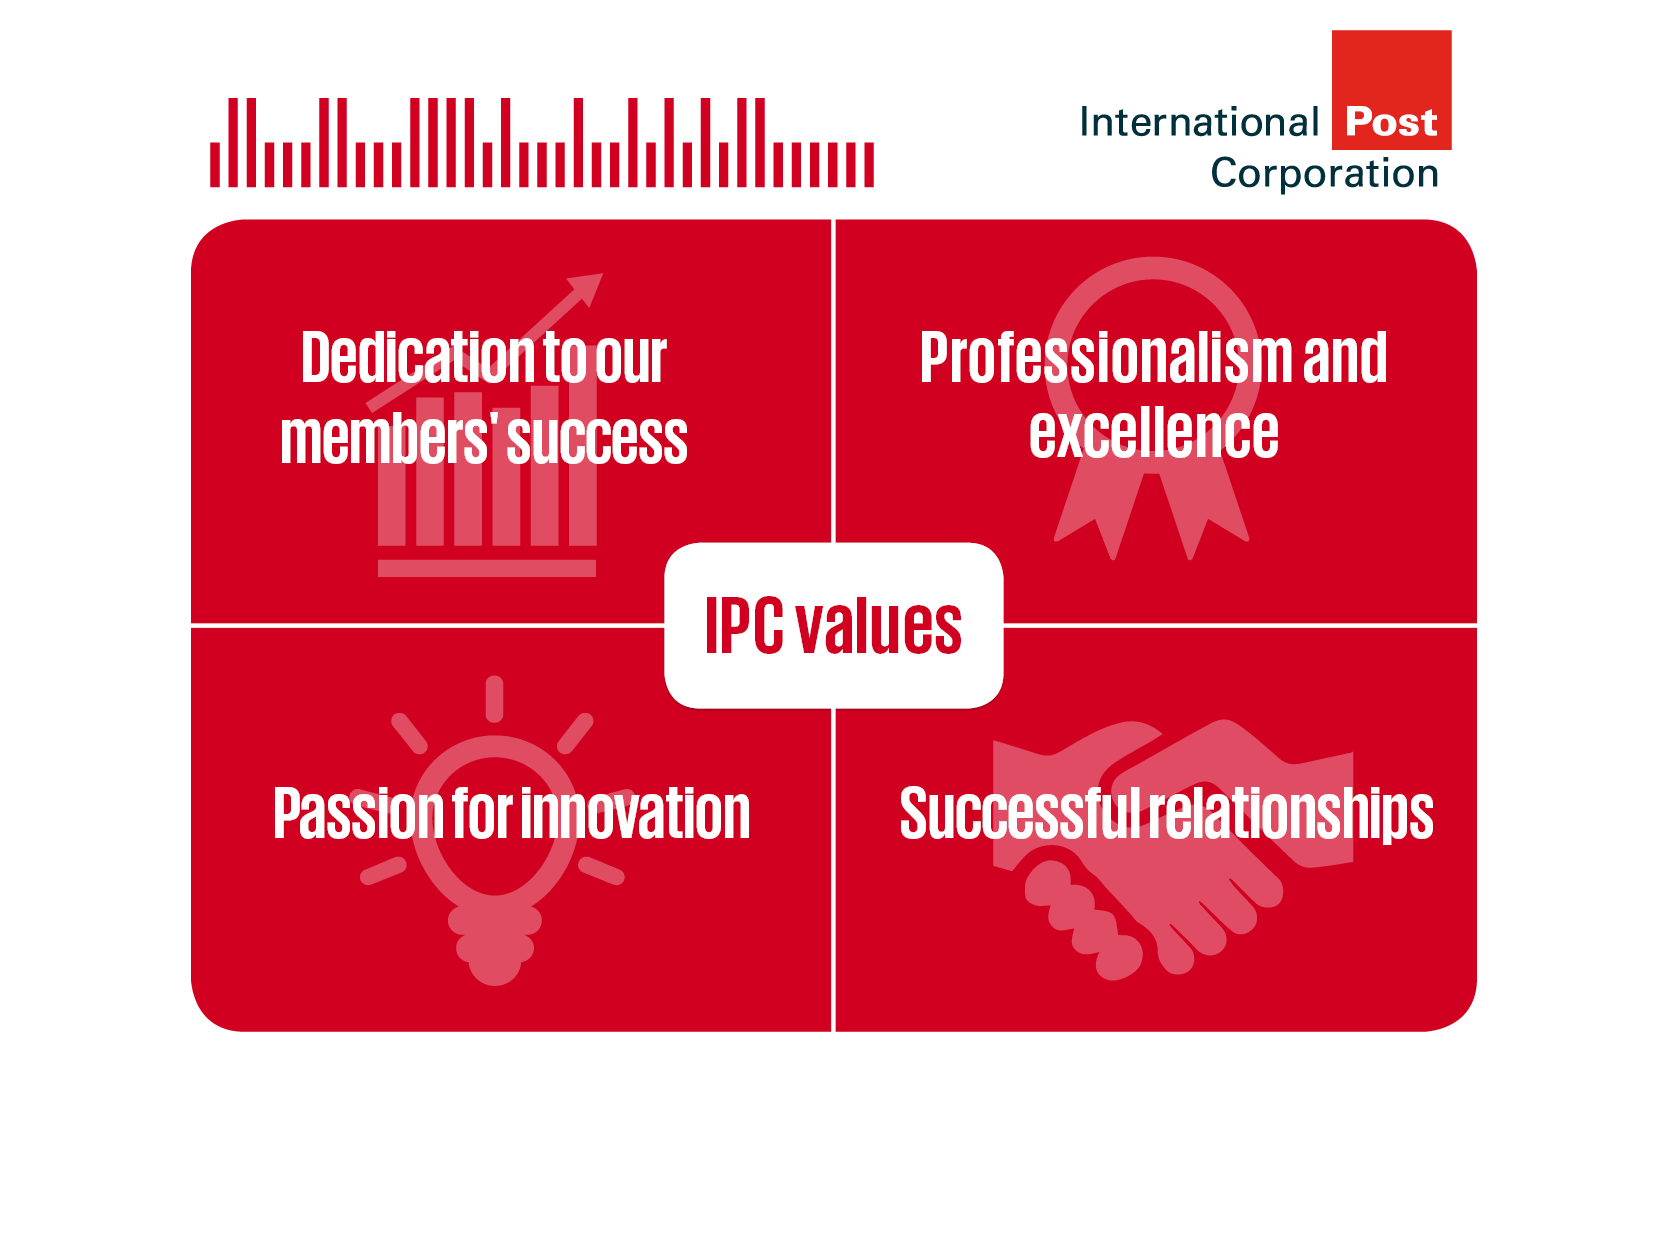 ipc values